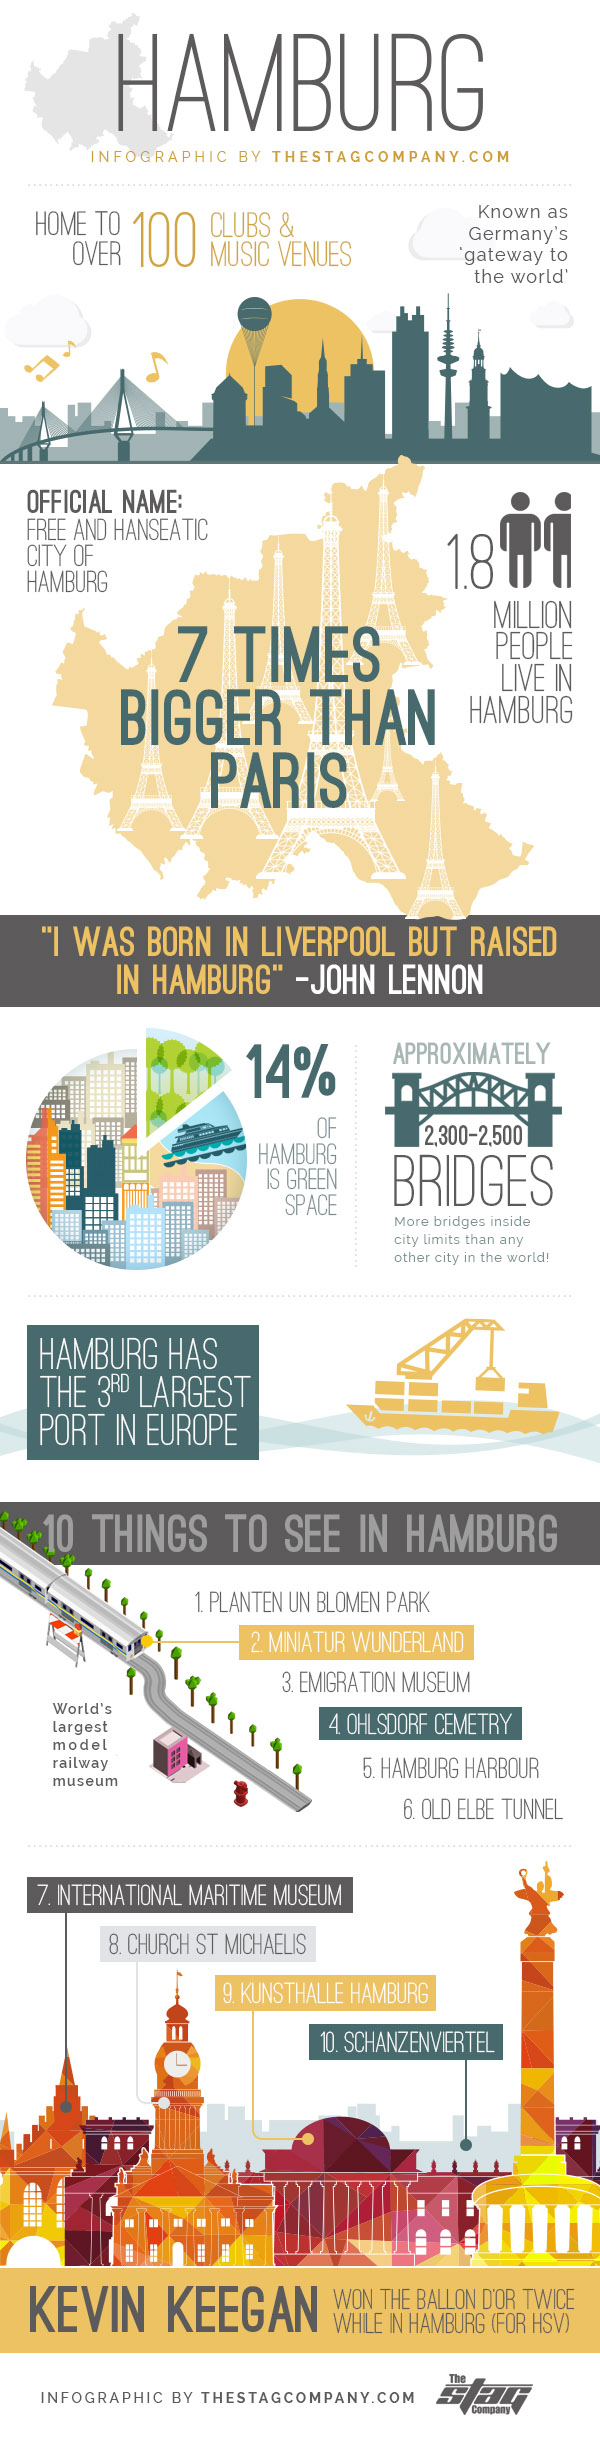 hamburg infographic